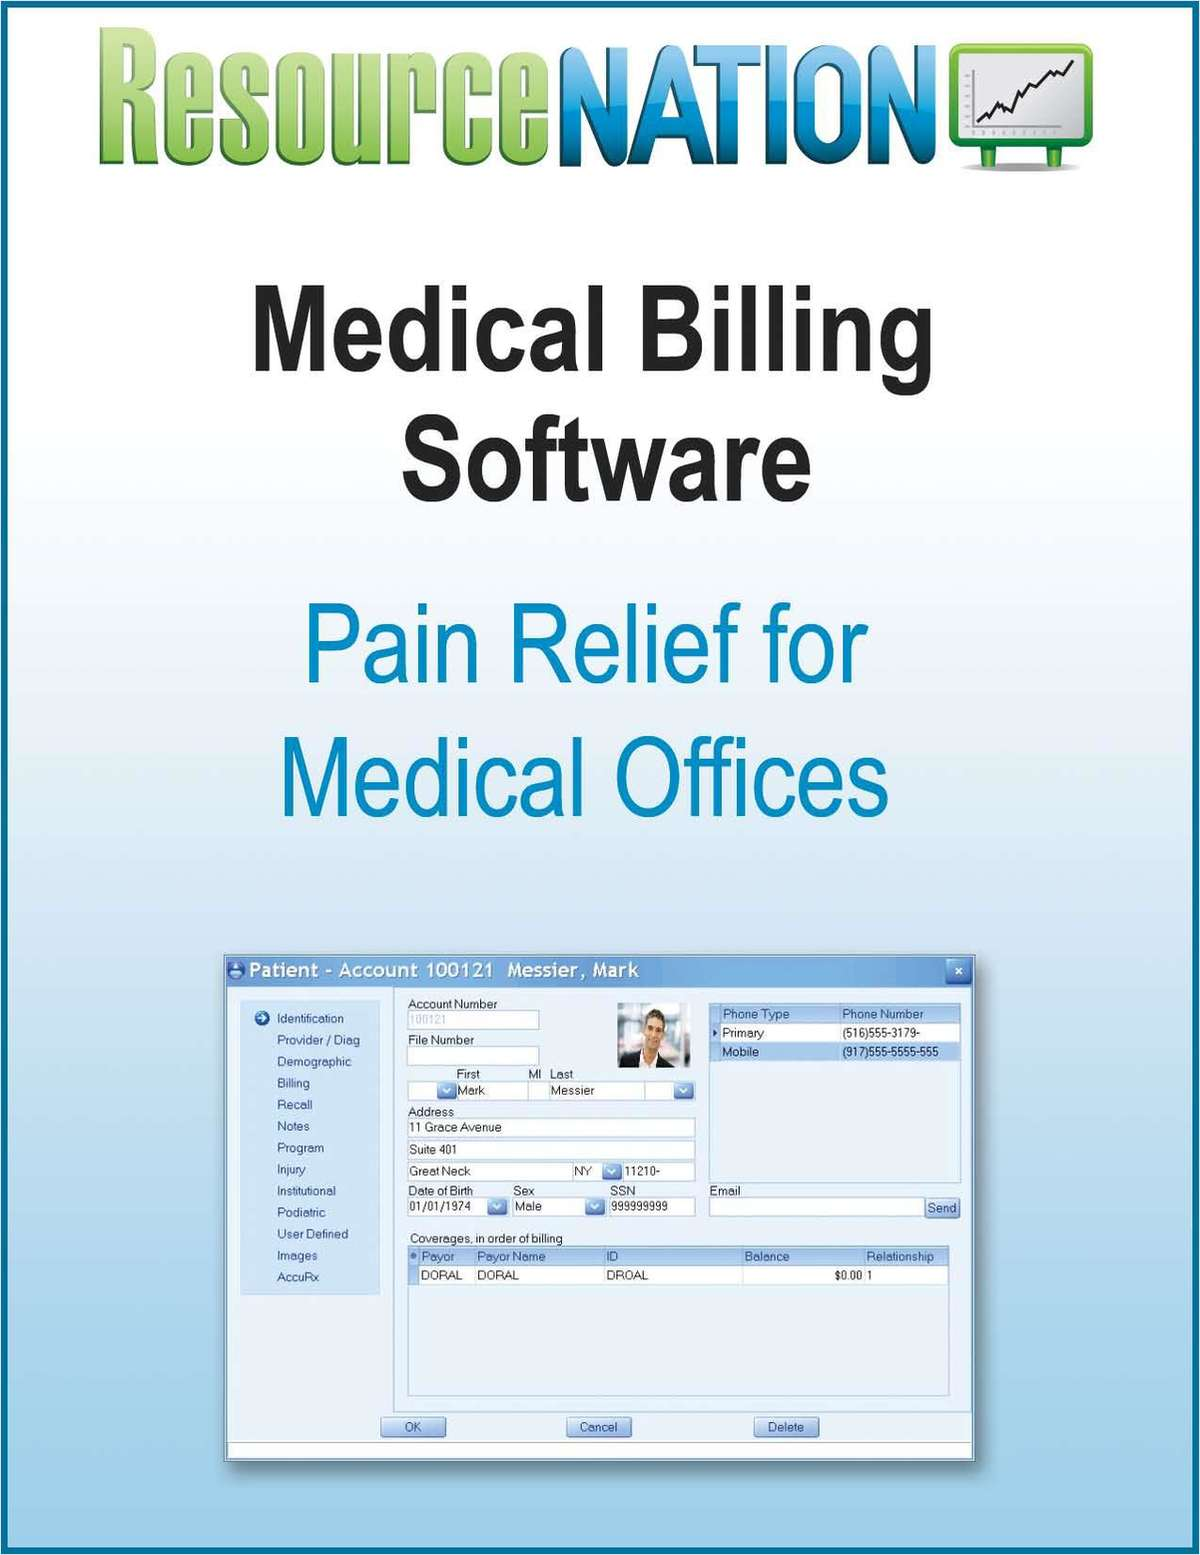 Choosing the Right Medical Billing Software for Your Practice